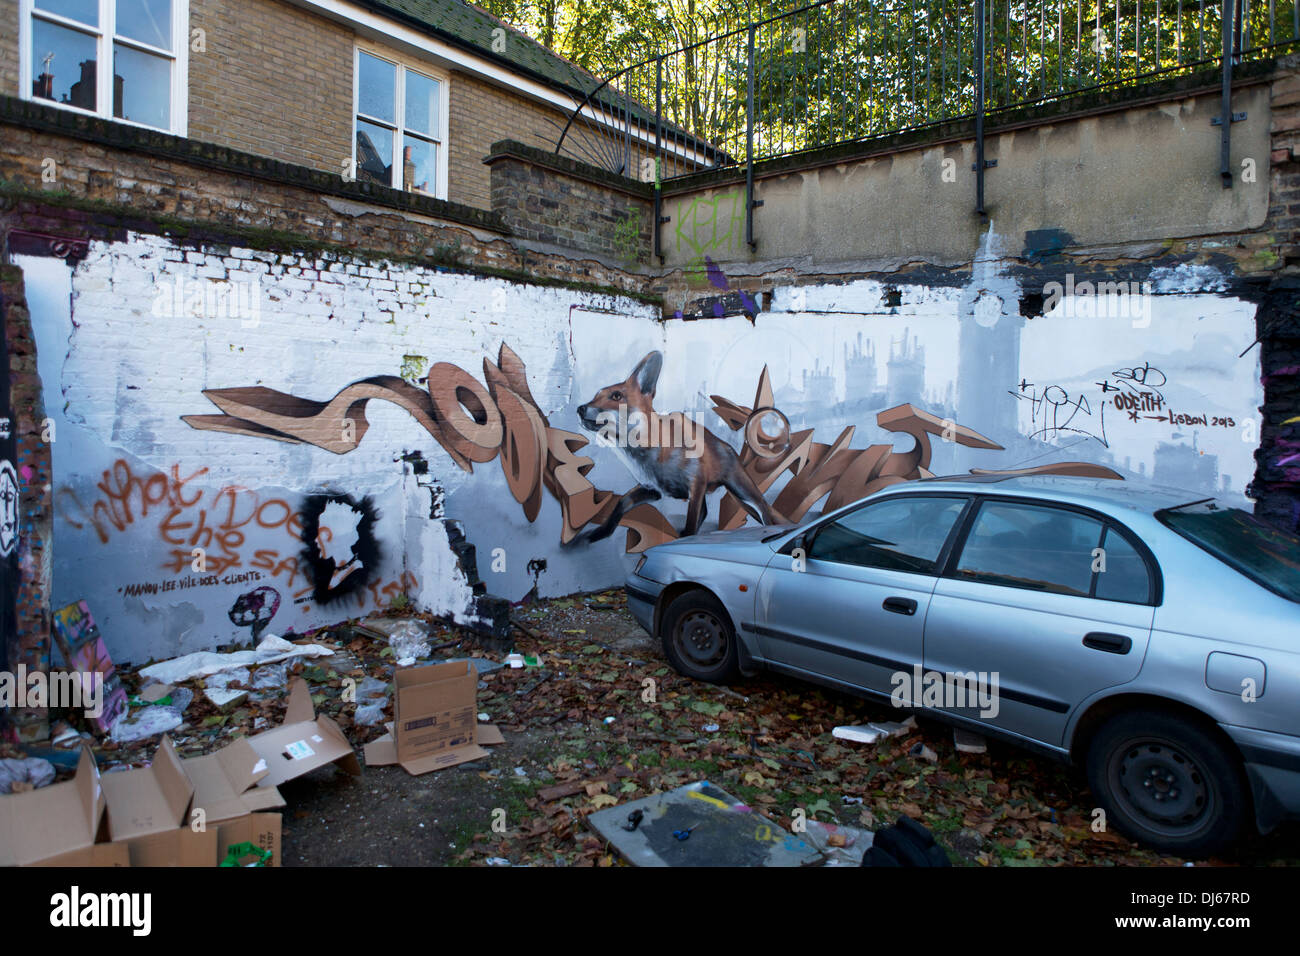 Street Art on a side street near Brick Lane, London, UK. Stock Photo